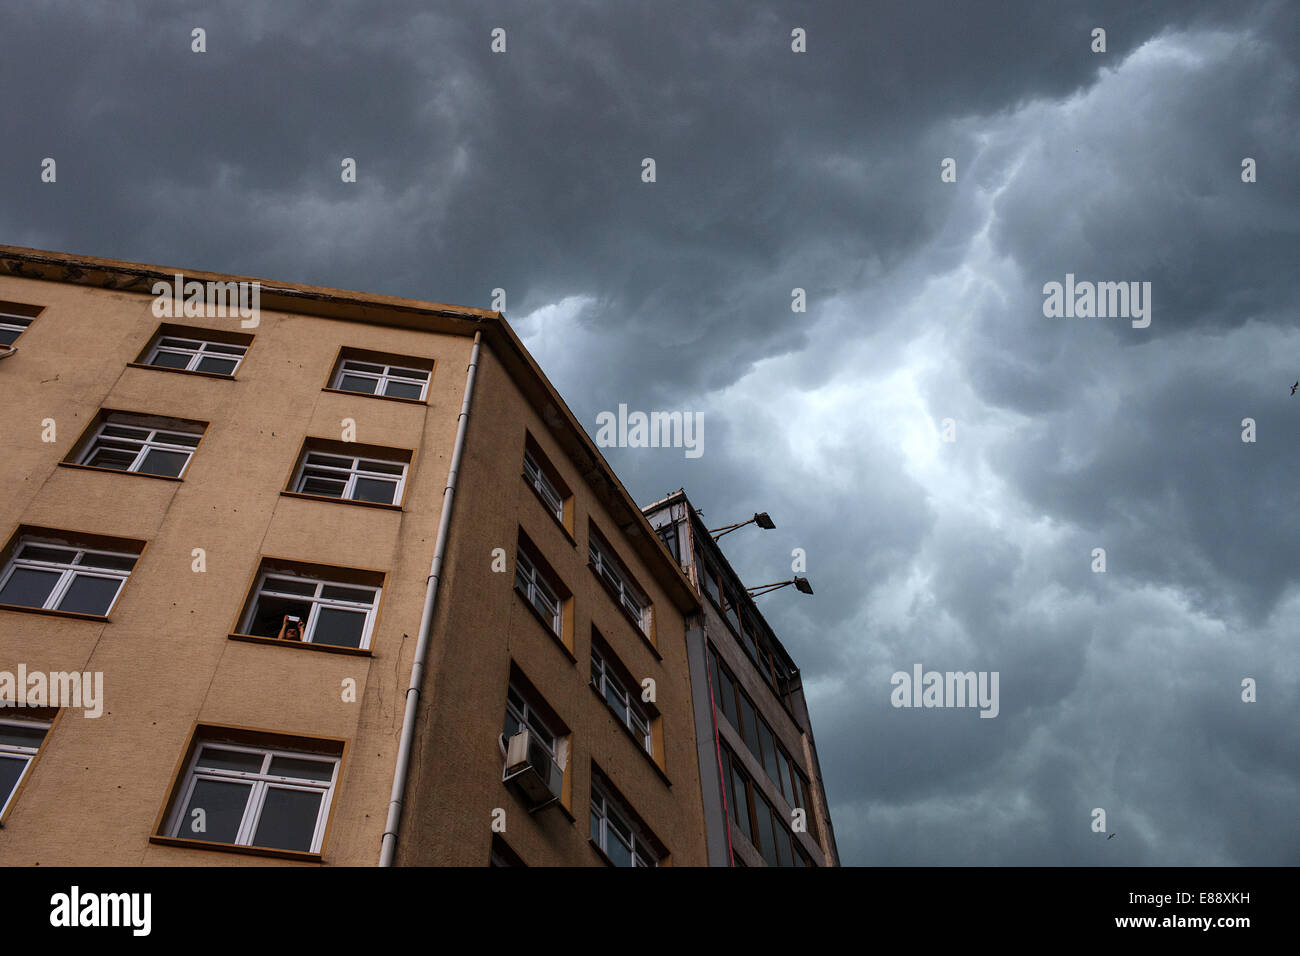 Dark clouds on the sky before thunderstorm in Aksaray, Istanbul, Turkey - Stock Image